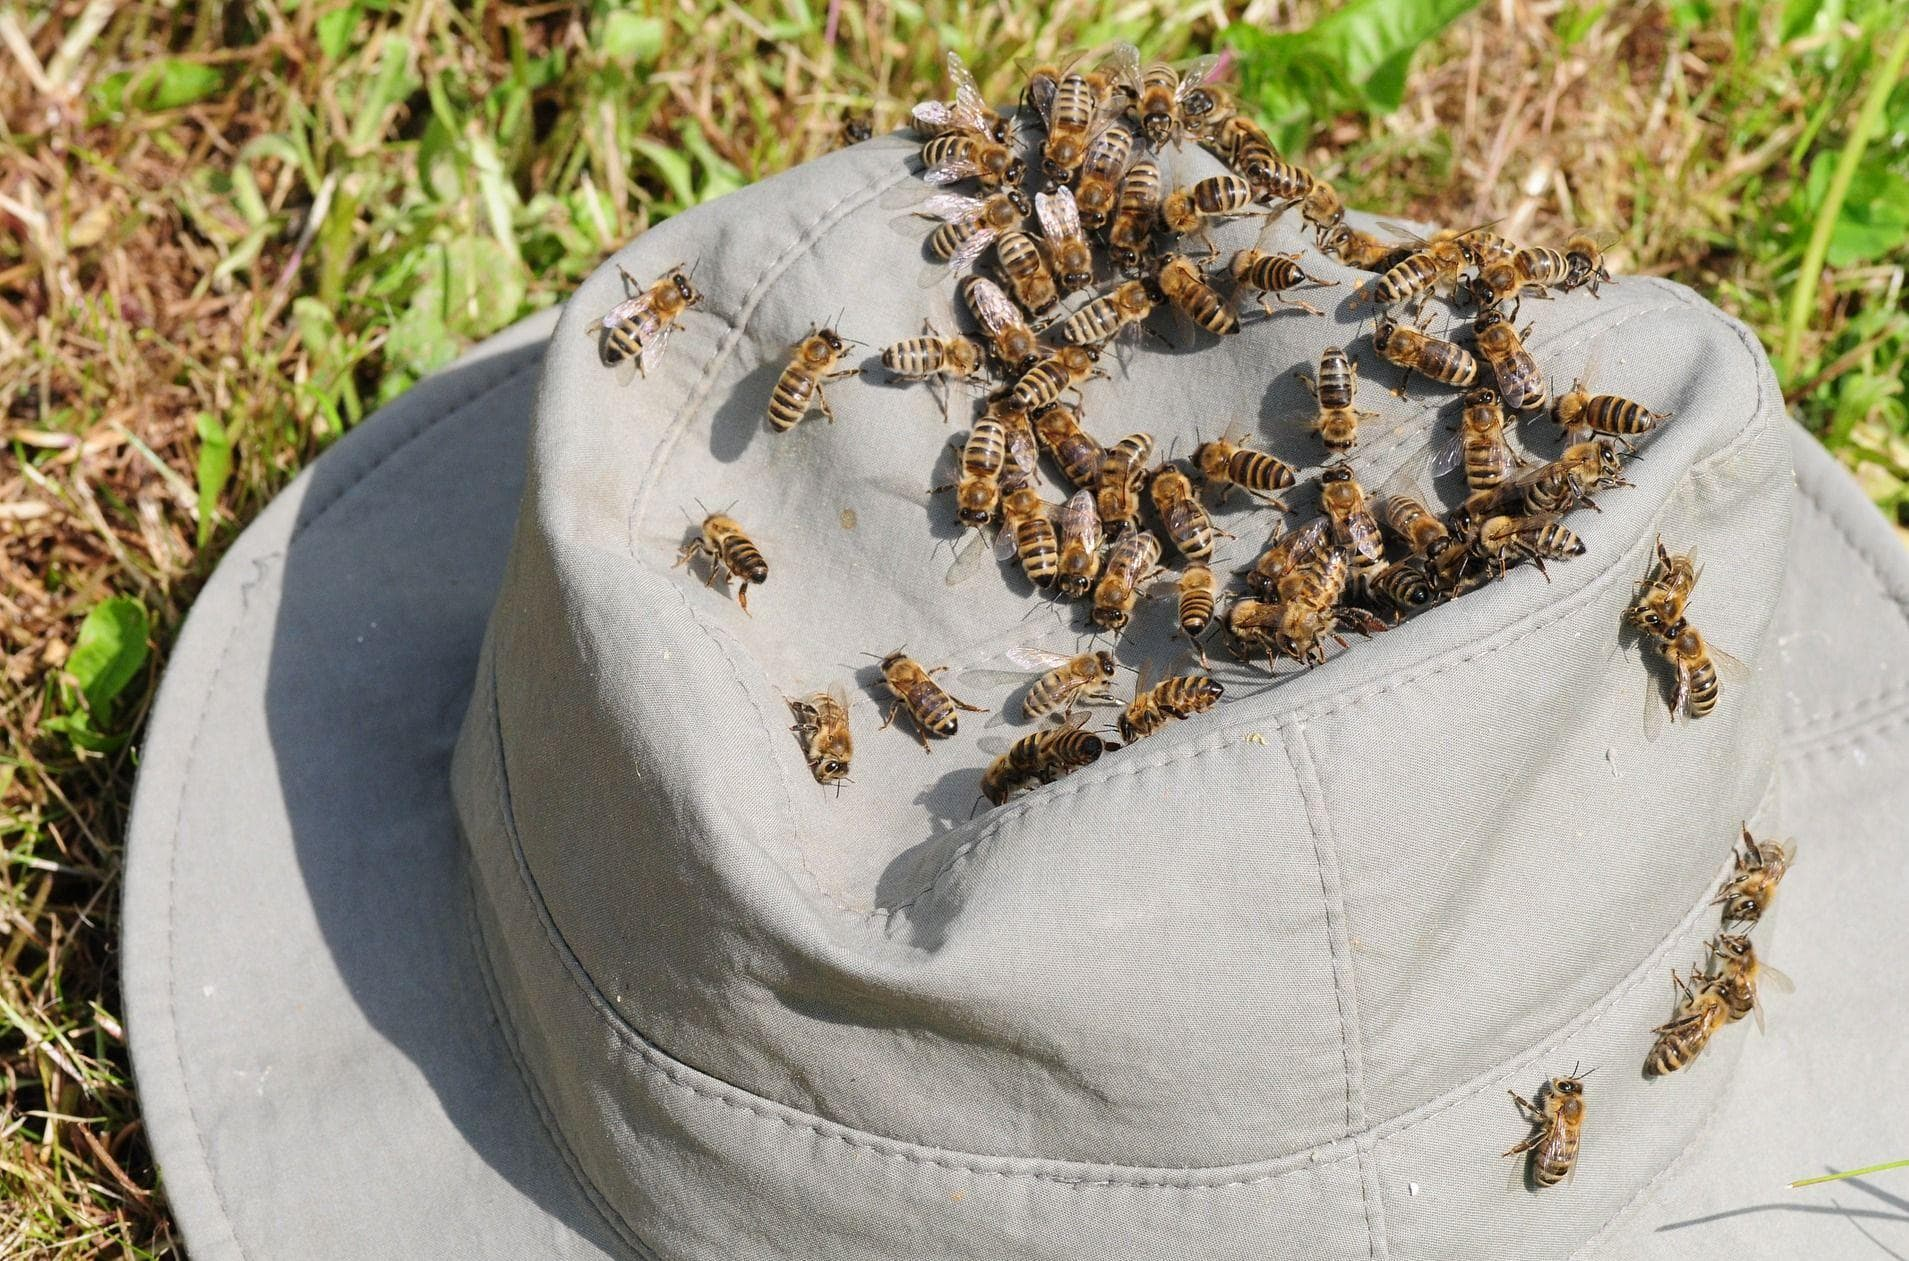 Random Things You Should Know About Being Attacked by a Swarm of Bees